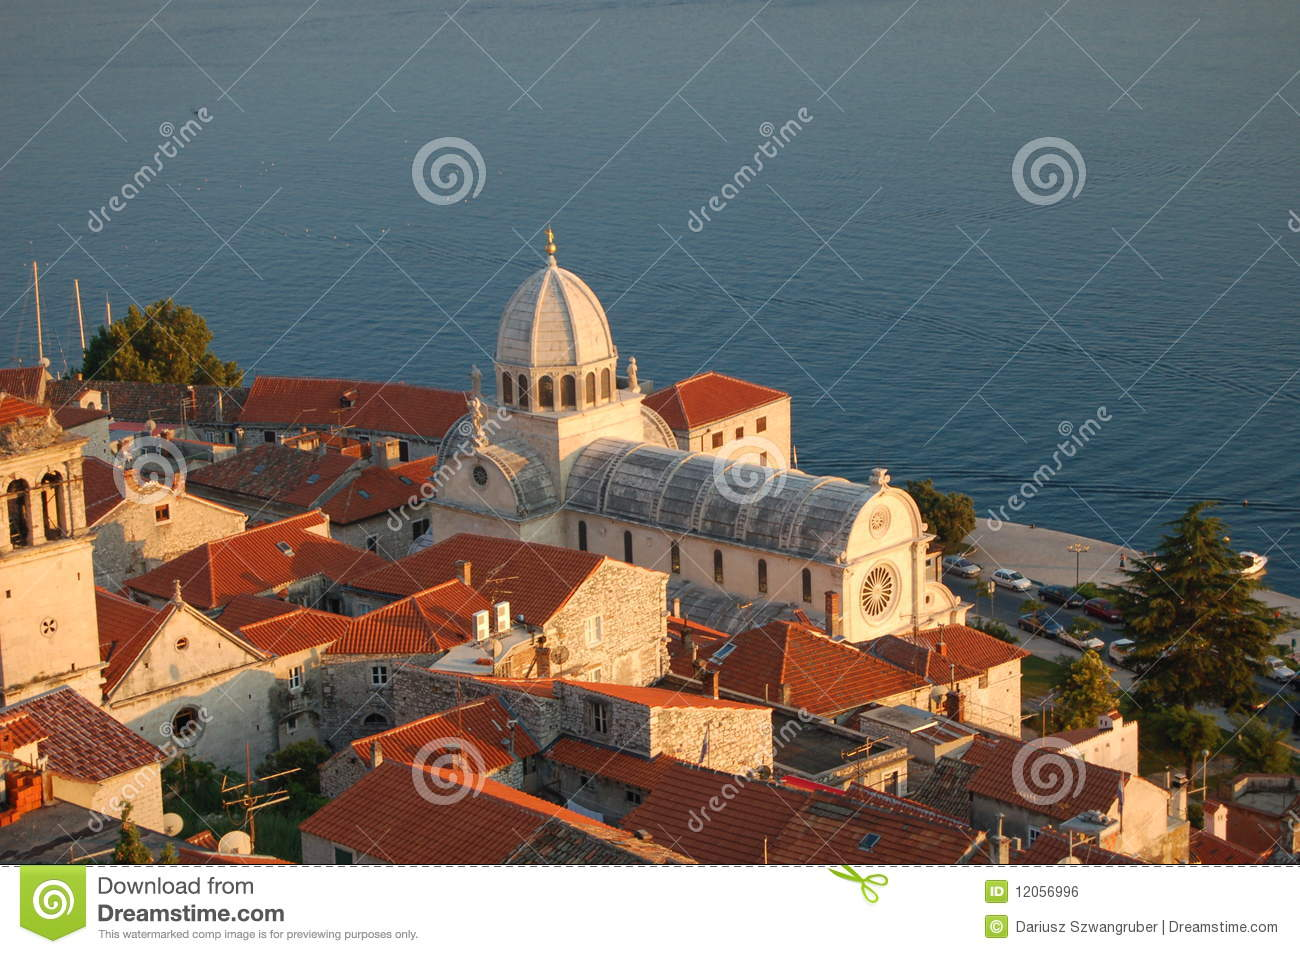 Bazyliki James sibenik st